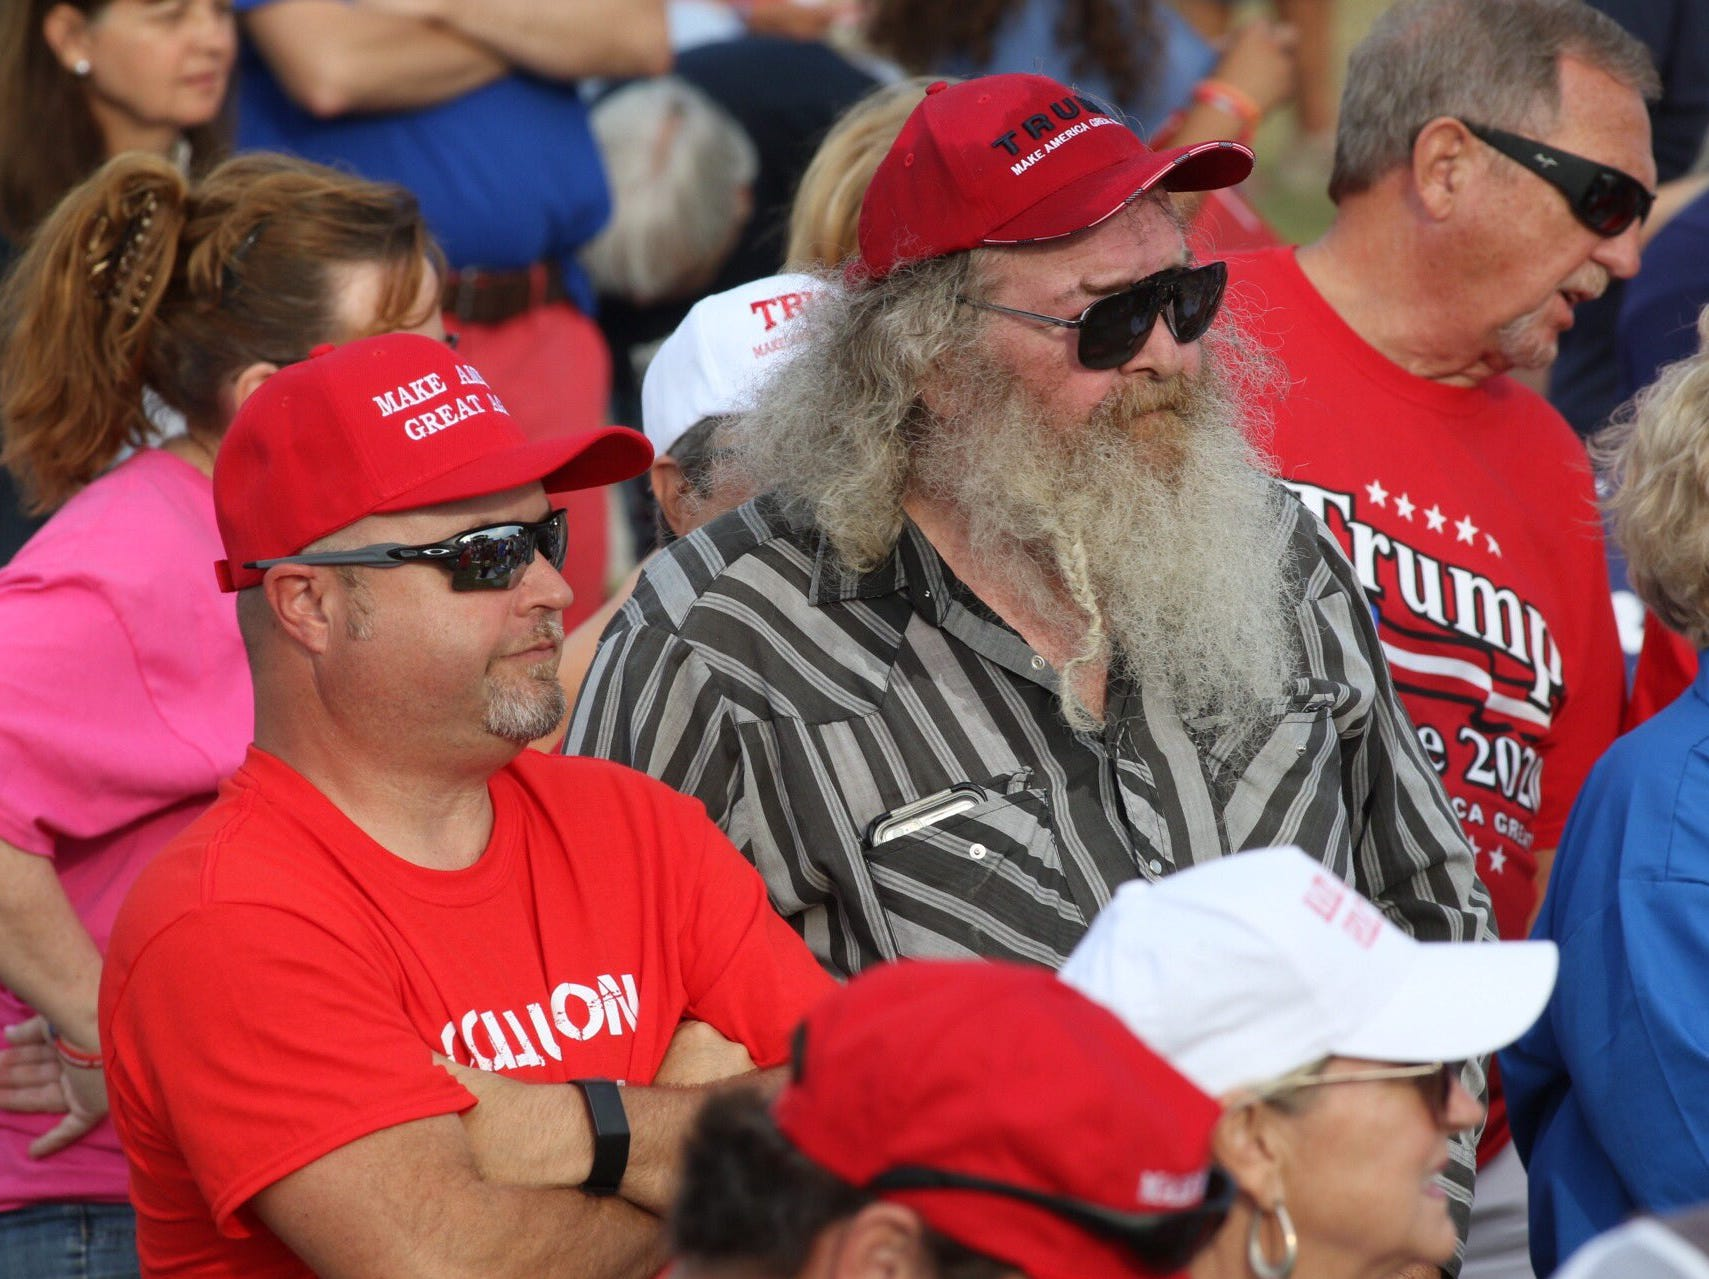 Scores of Trump supporters fill the stands at the re-election rally in Panama City, Fla. on Wednesday, May 8, 2019.